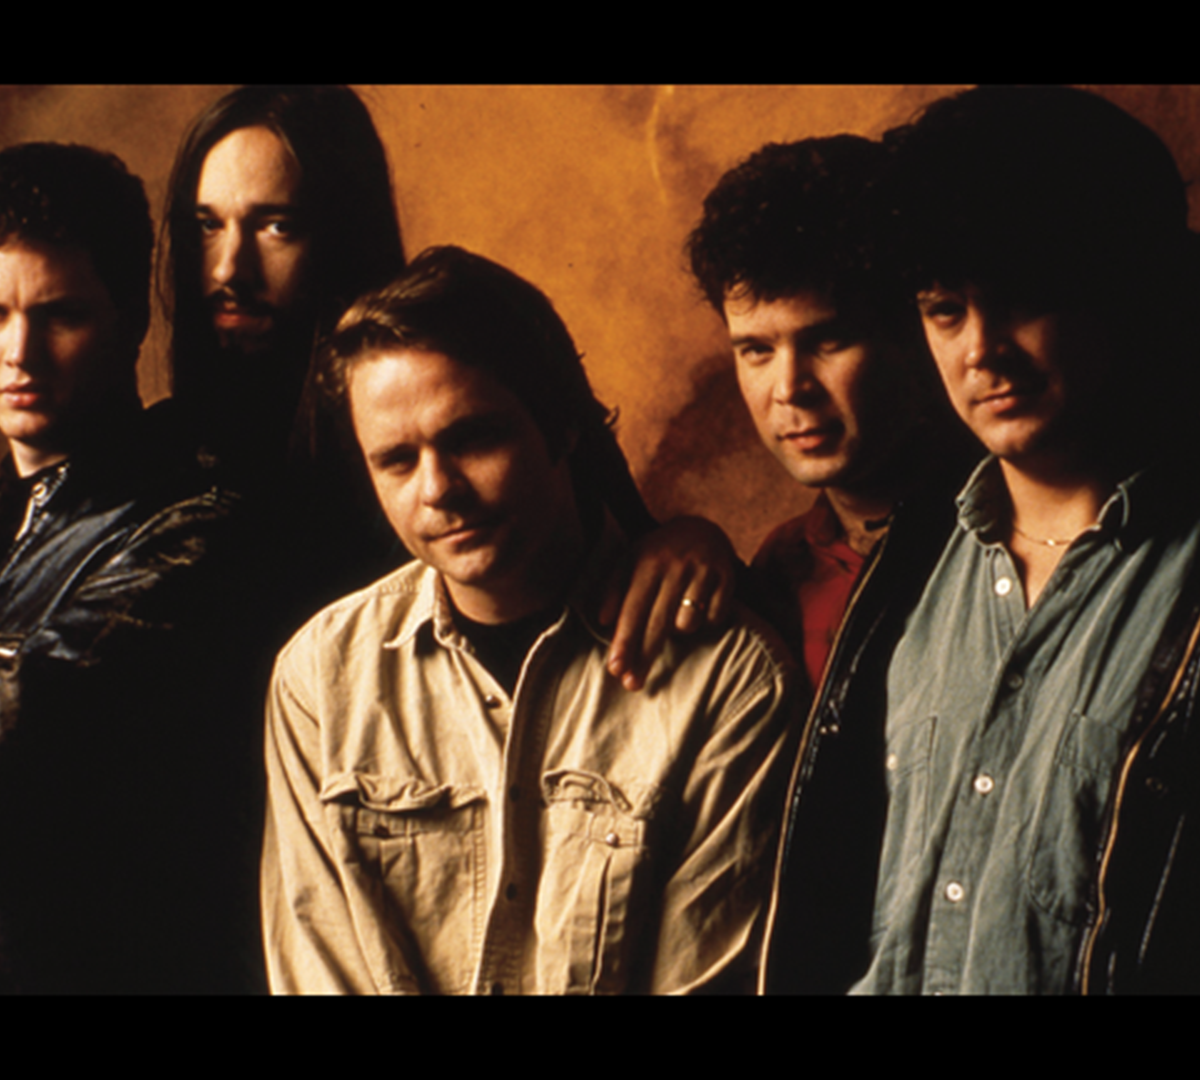 Special Silver Vinyl And Half Speed Master Editions Of The Tragically Hip's Iconic Album Day For Night To Be Released On September 27